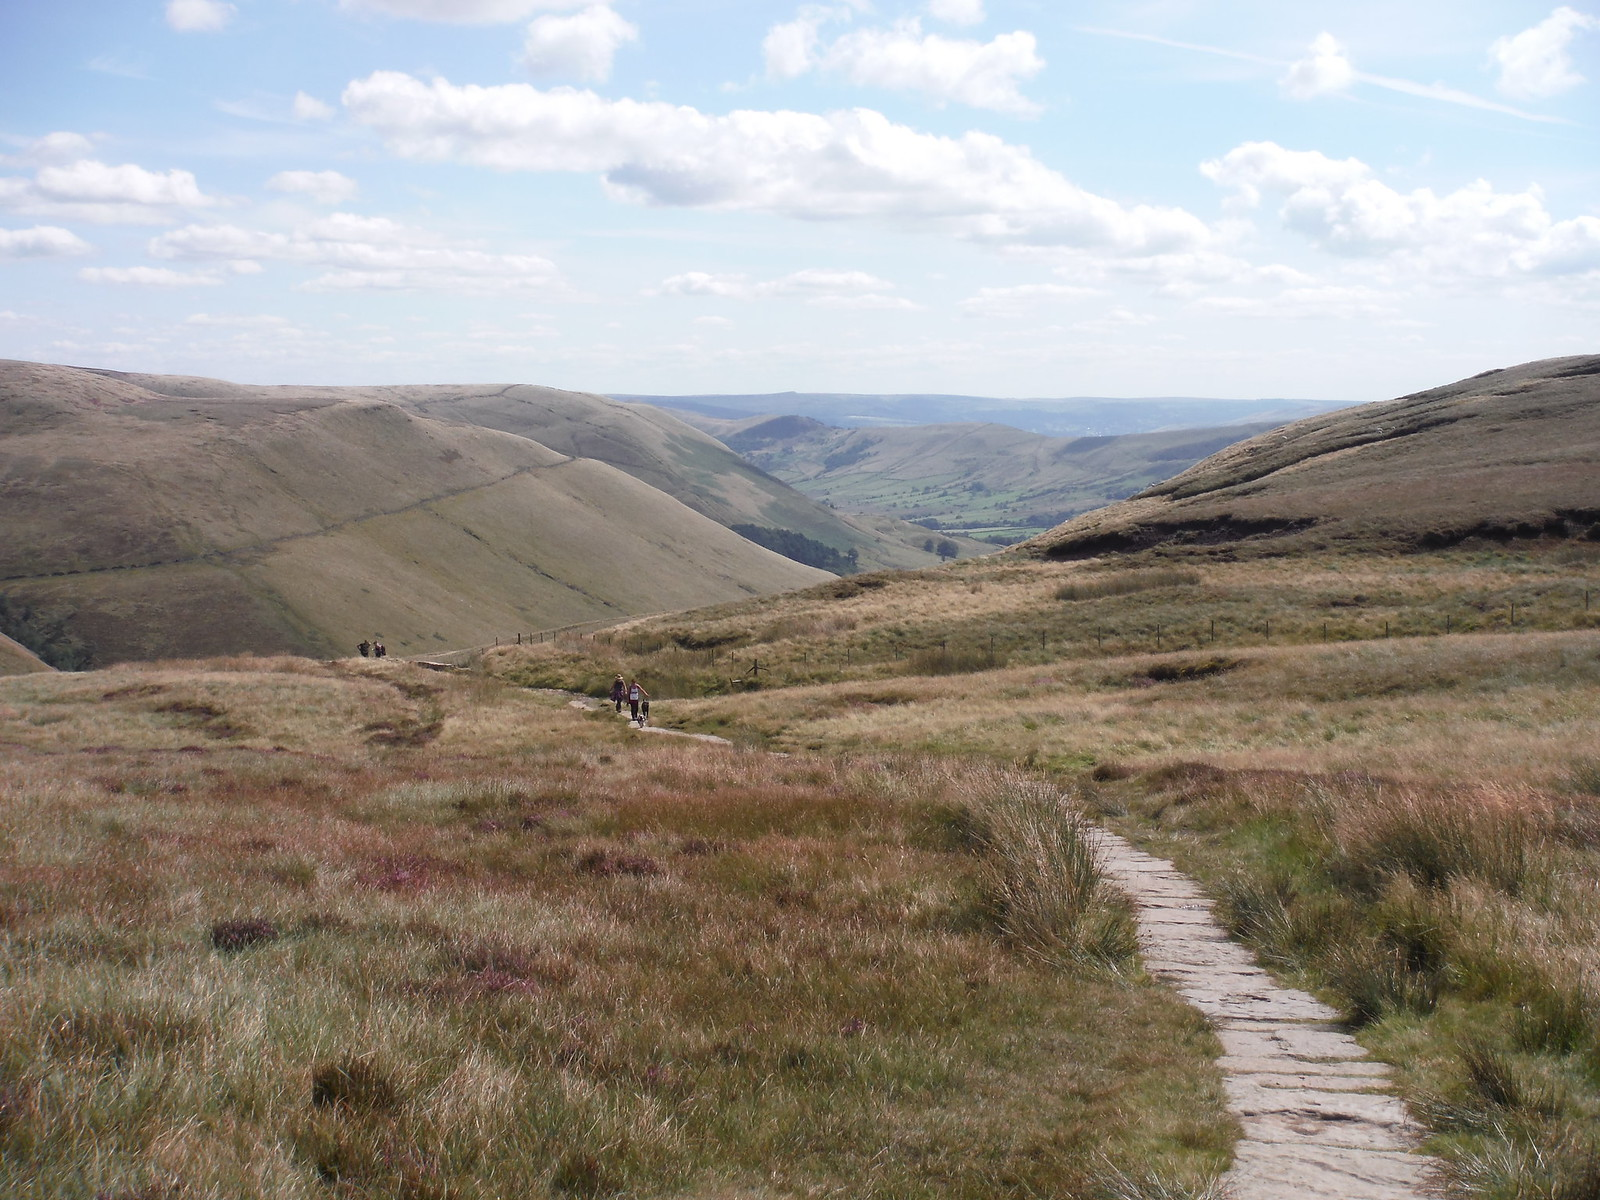 Vale of Edale from Path by Swine's Back SWC Walk 303 - Edale Circular (via Kinder Scout and Mam Tor)